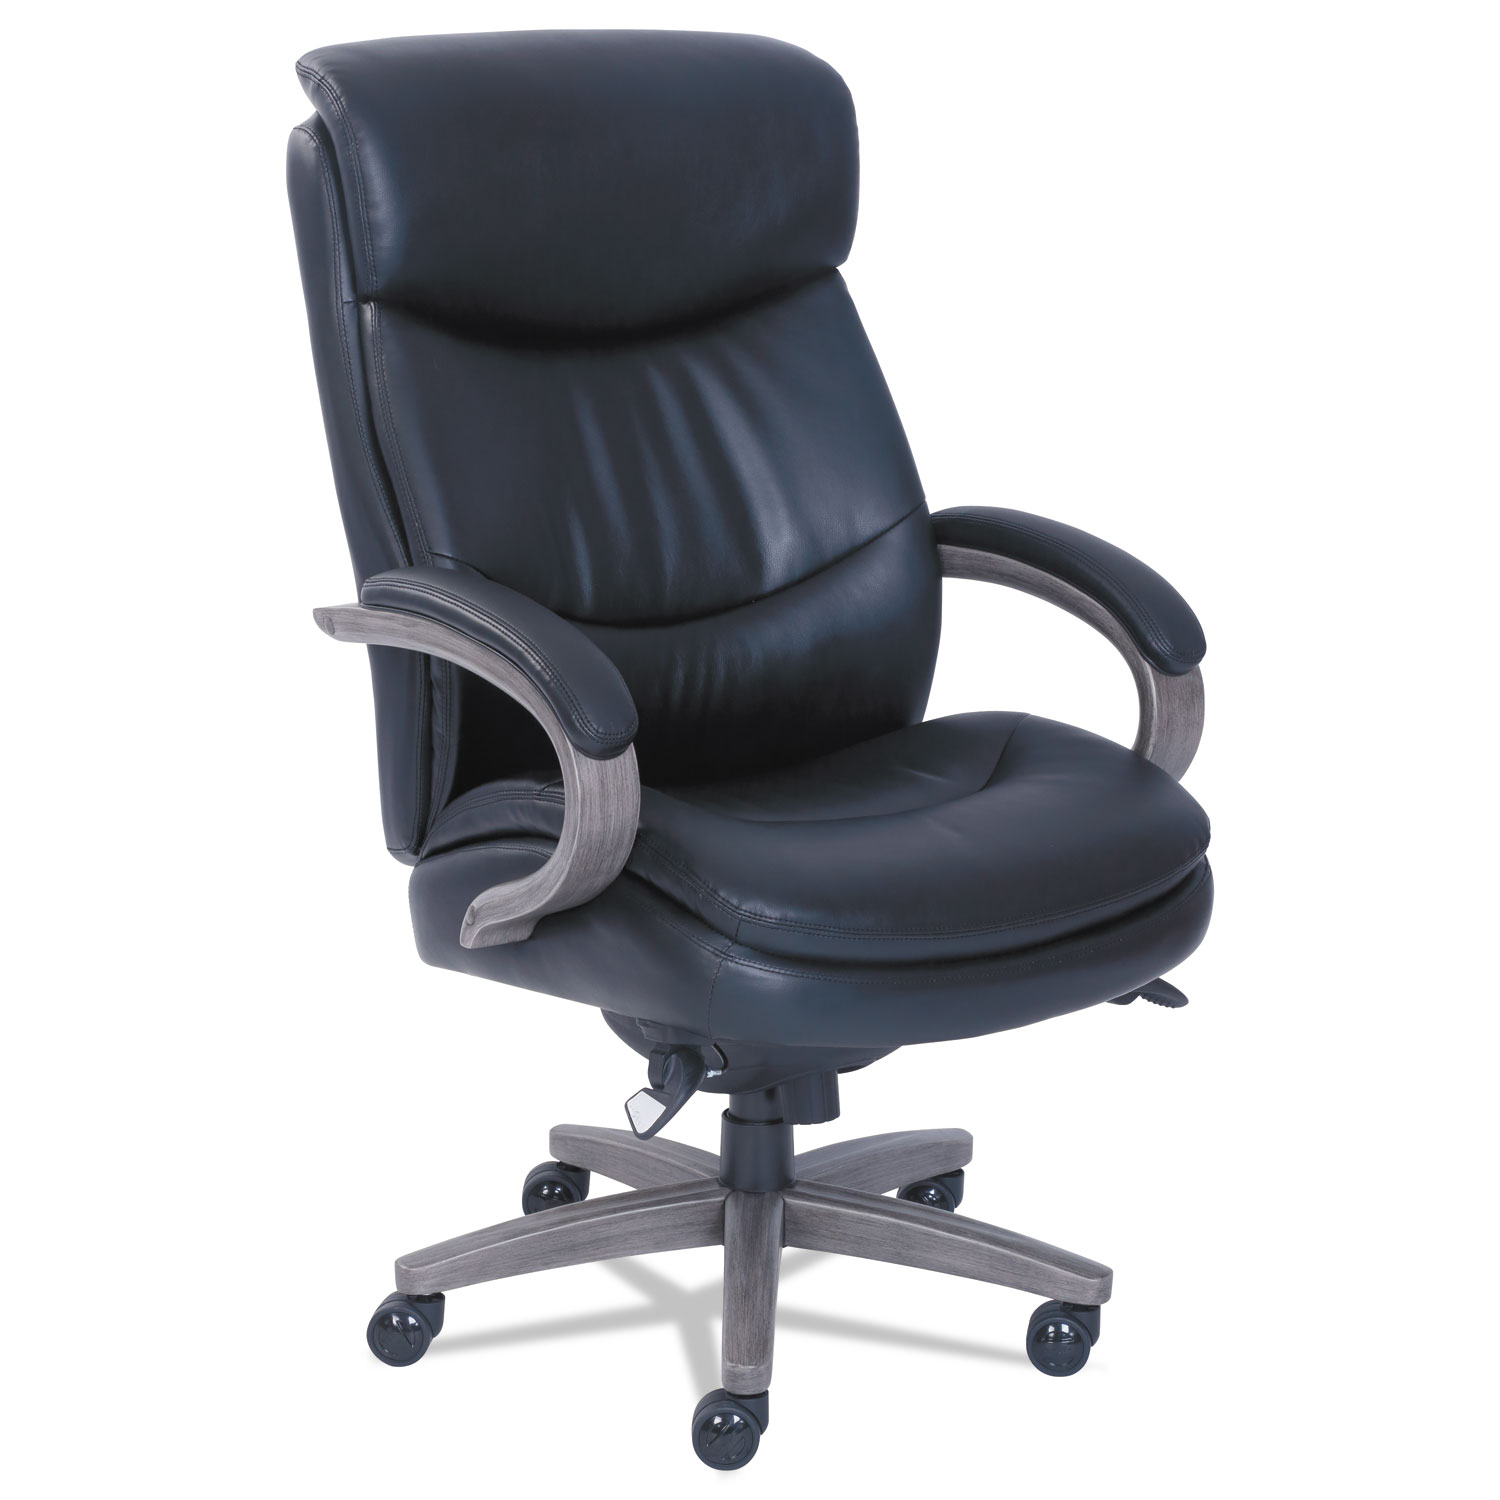 Tall Executive Chair Thumbnail 1 2